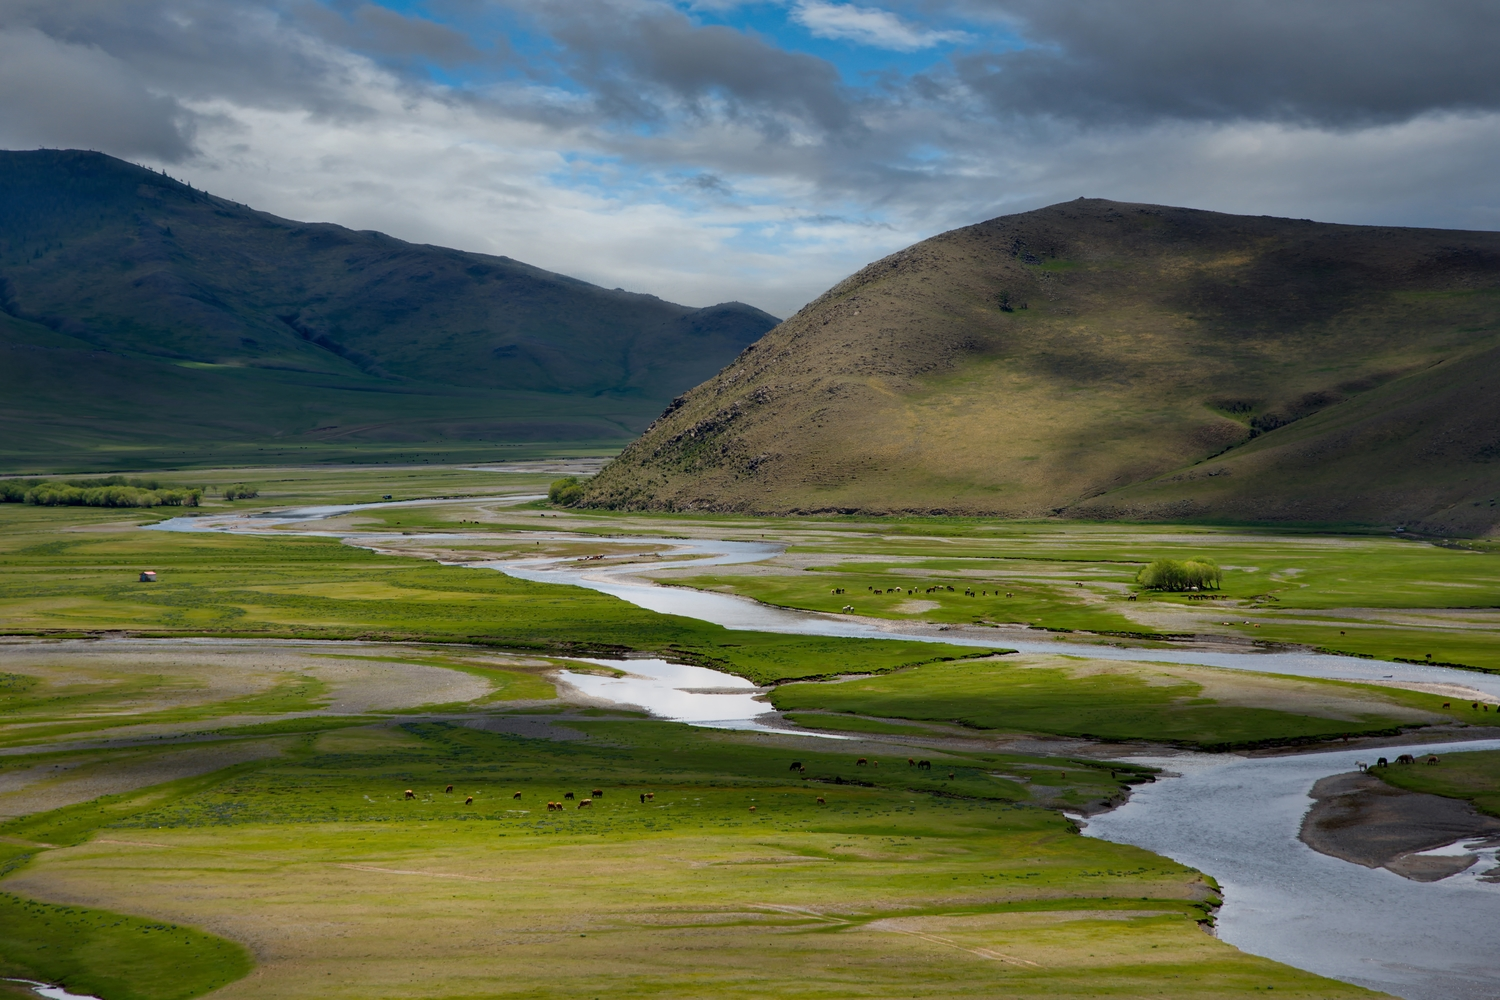 the UNESCO world heritage site Orkhon river valley